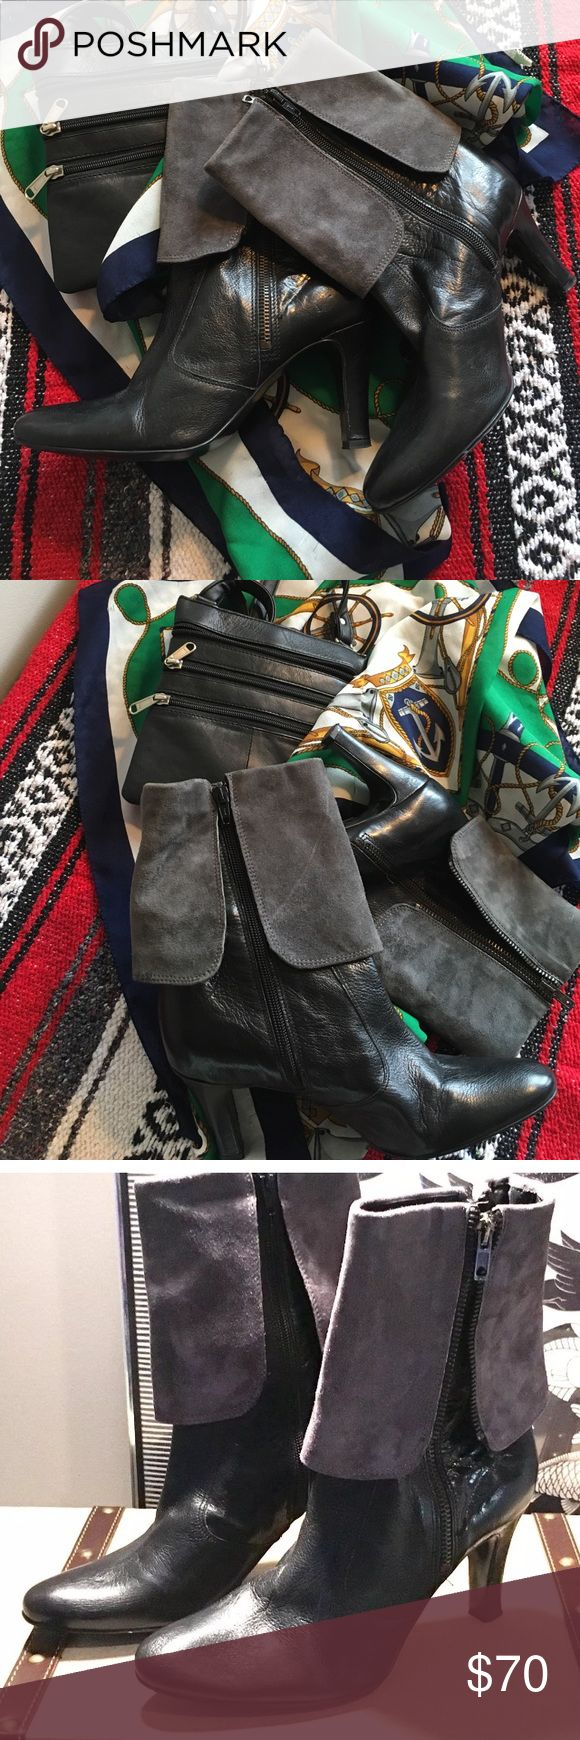 Otto Kern w9/eu39 leather and suede booties Beautiful, very elegant, European booties. Expensive and amazing quality. Worn twice. I bought them because I wanted to have them but... I wear 9,5-10. You know the rest of that 😭 story. Gently preloved. Make offers! Otto Kern Shoes Ankle Boots & Booties